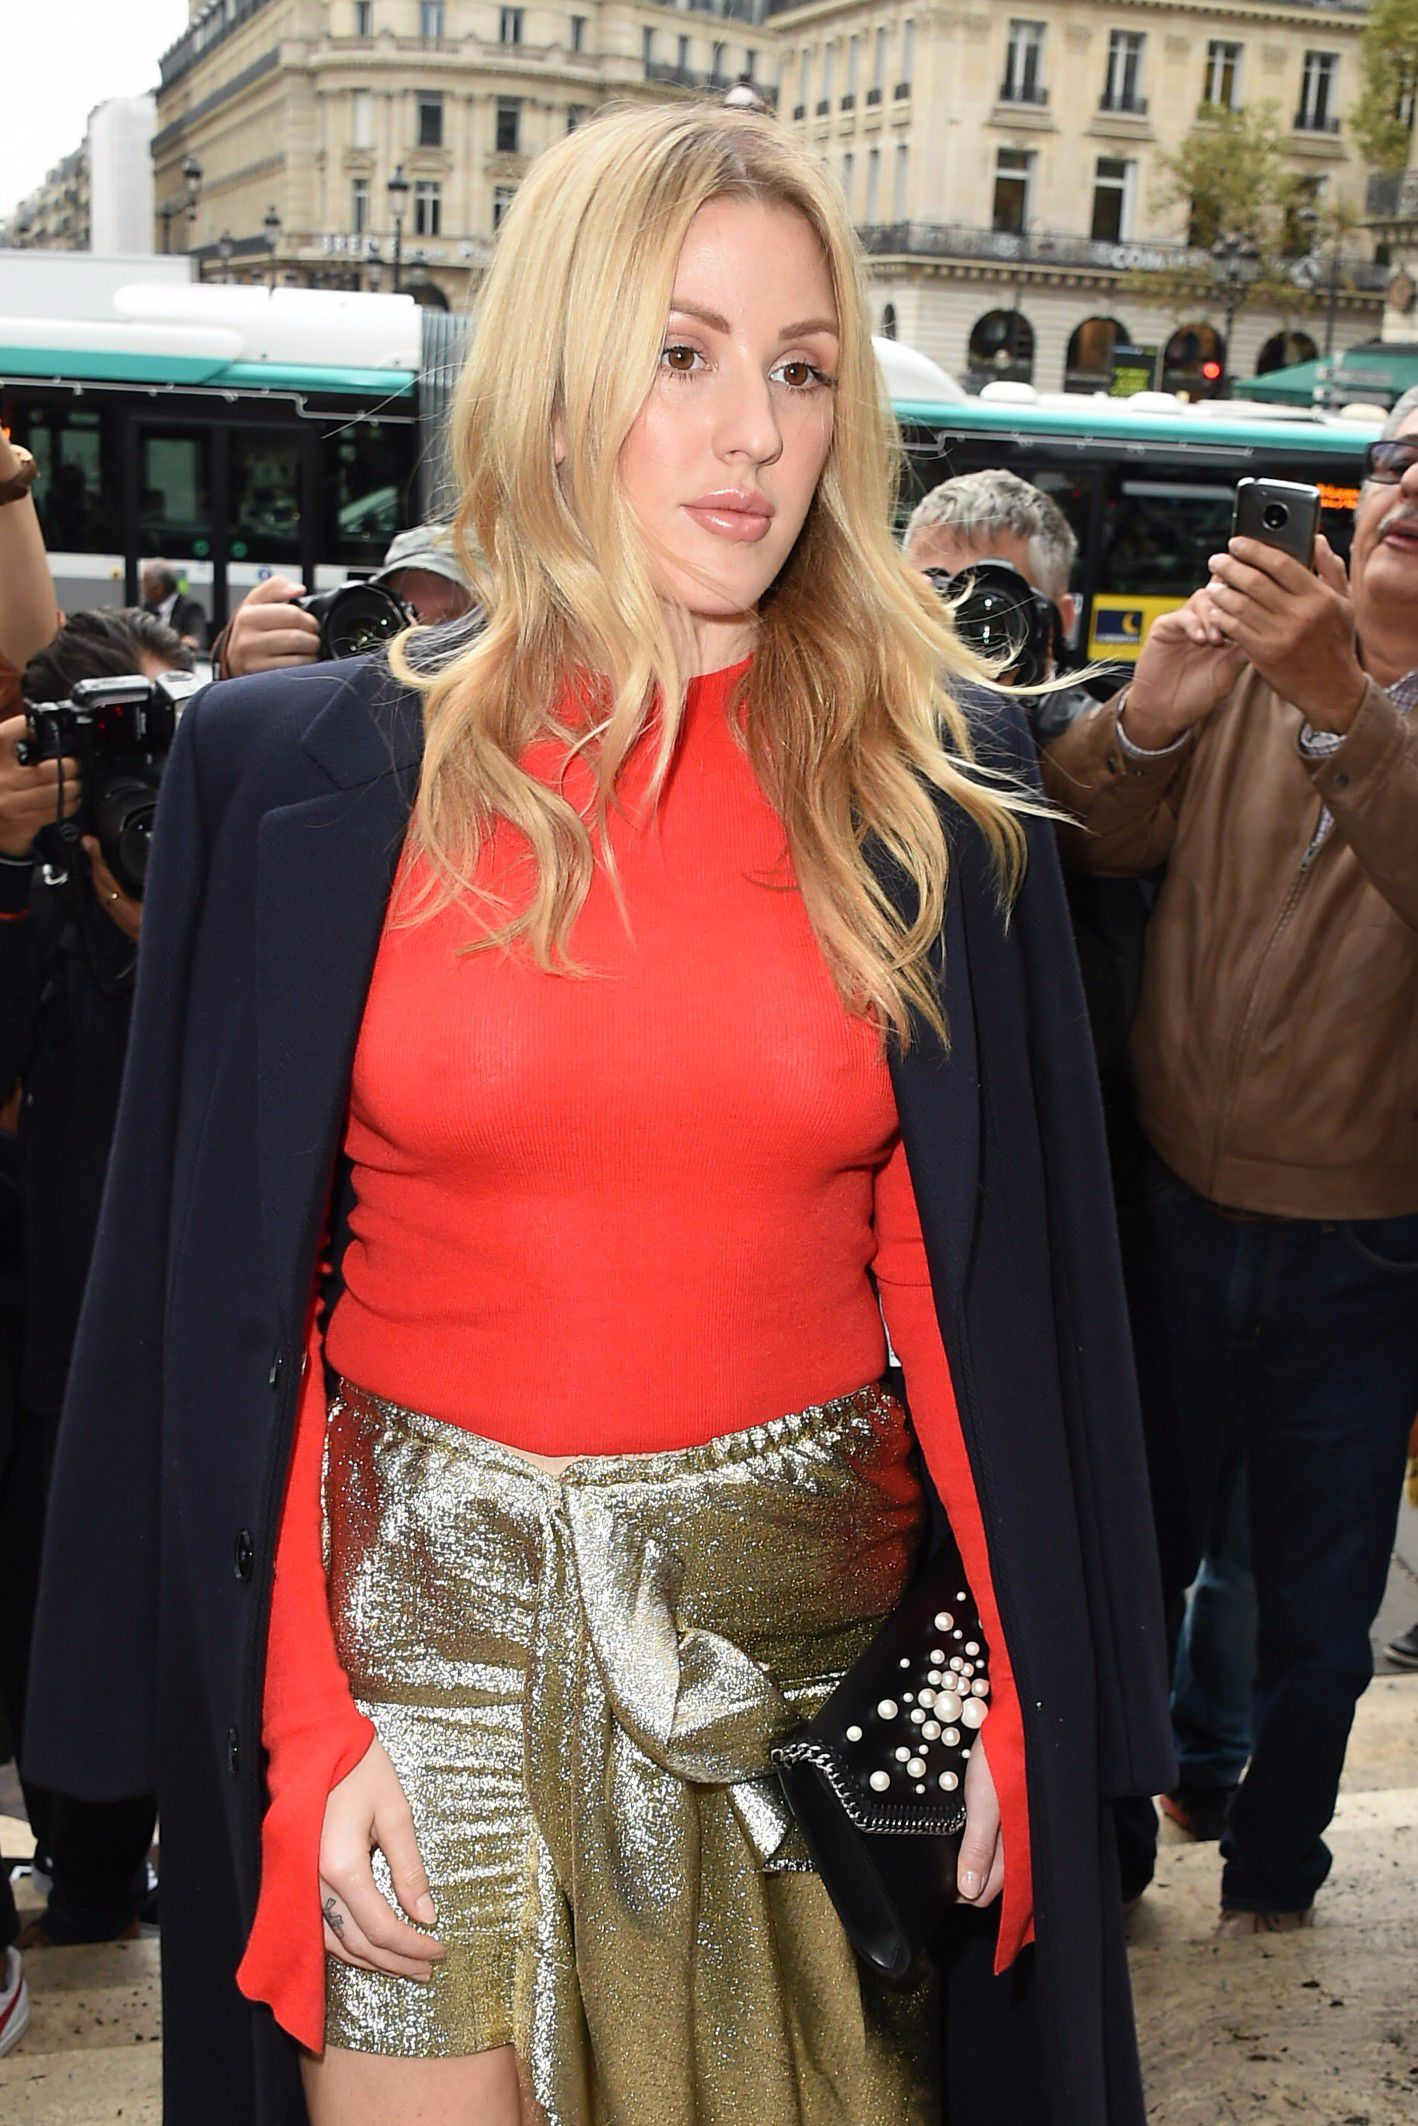 ellie-goulding-braless-in-see-thru-top-at-a-fashion-show-in-paris-2710